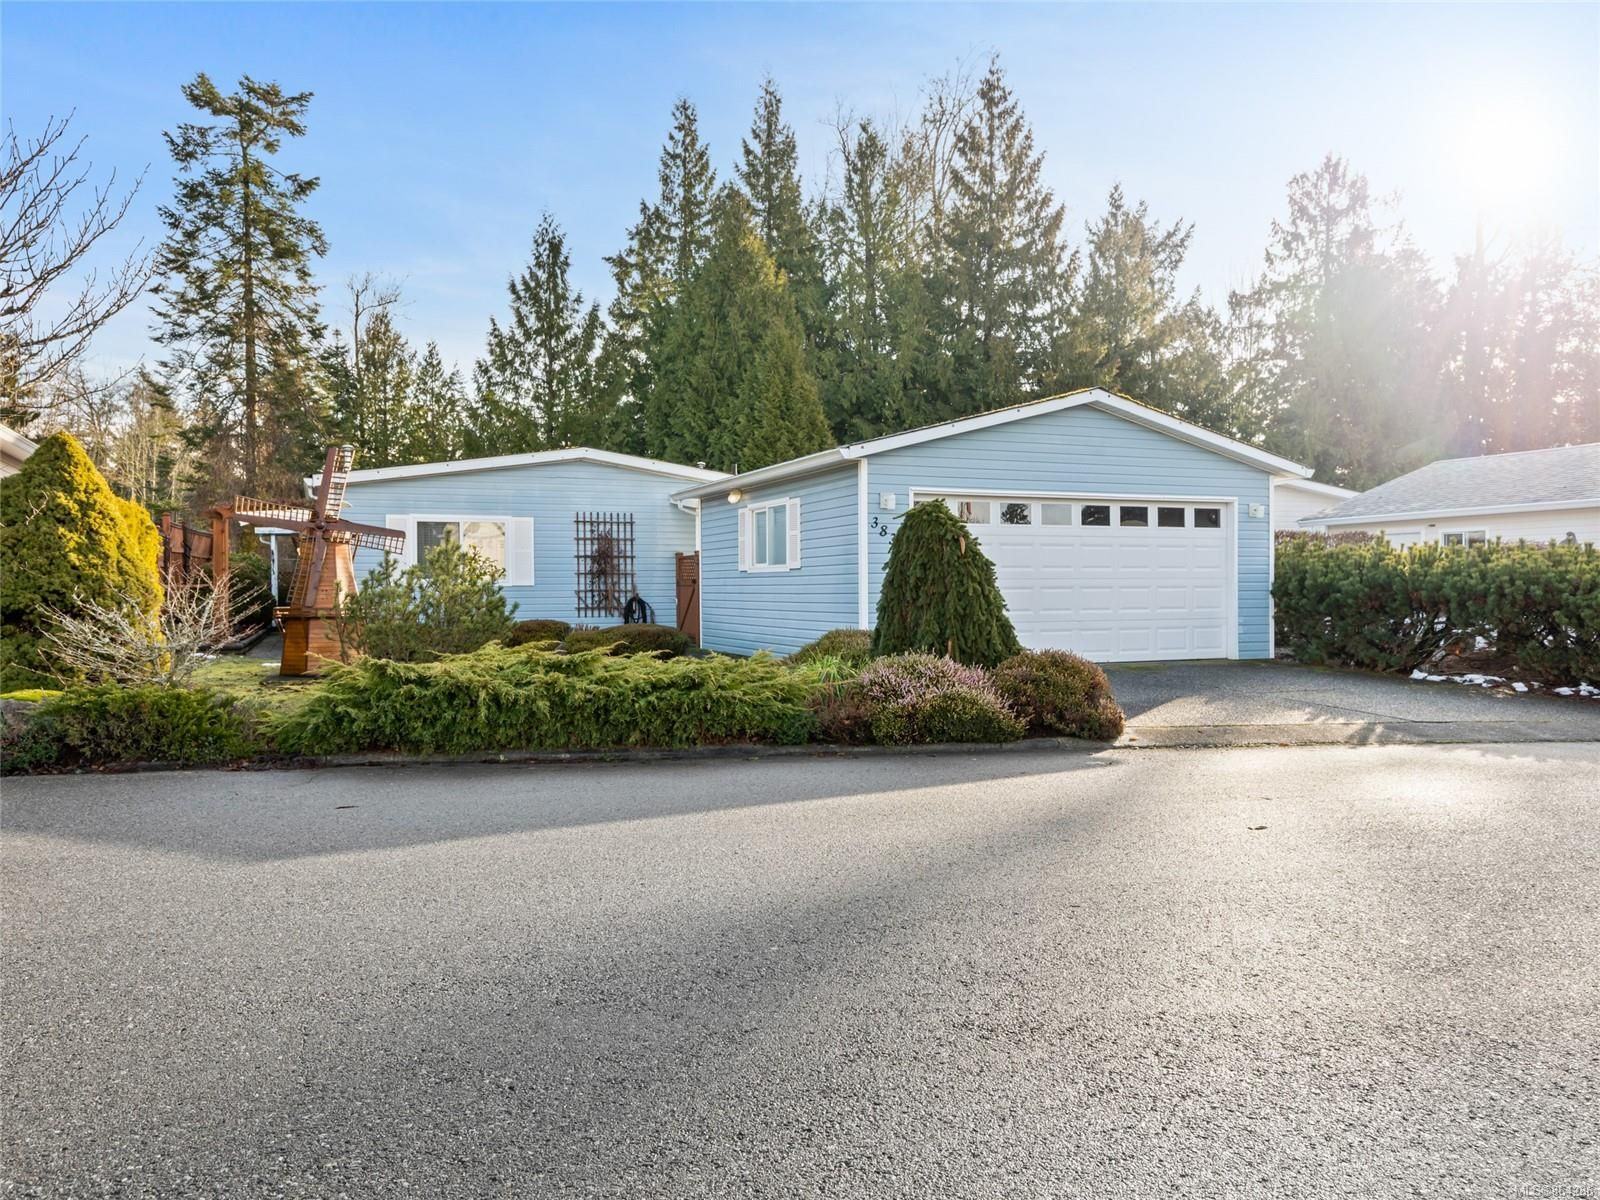 Main Photo: 3836 King Arthur Dr in : Na North Jingle Pot Manufactured Home for sale (Nanaimo)  : MLS®# 864286